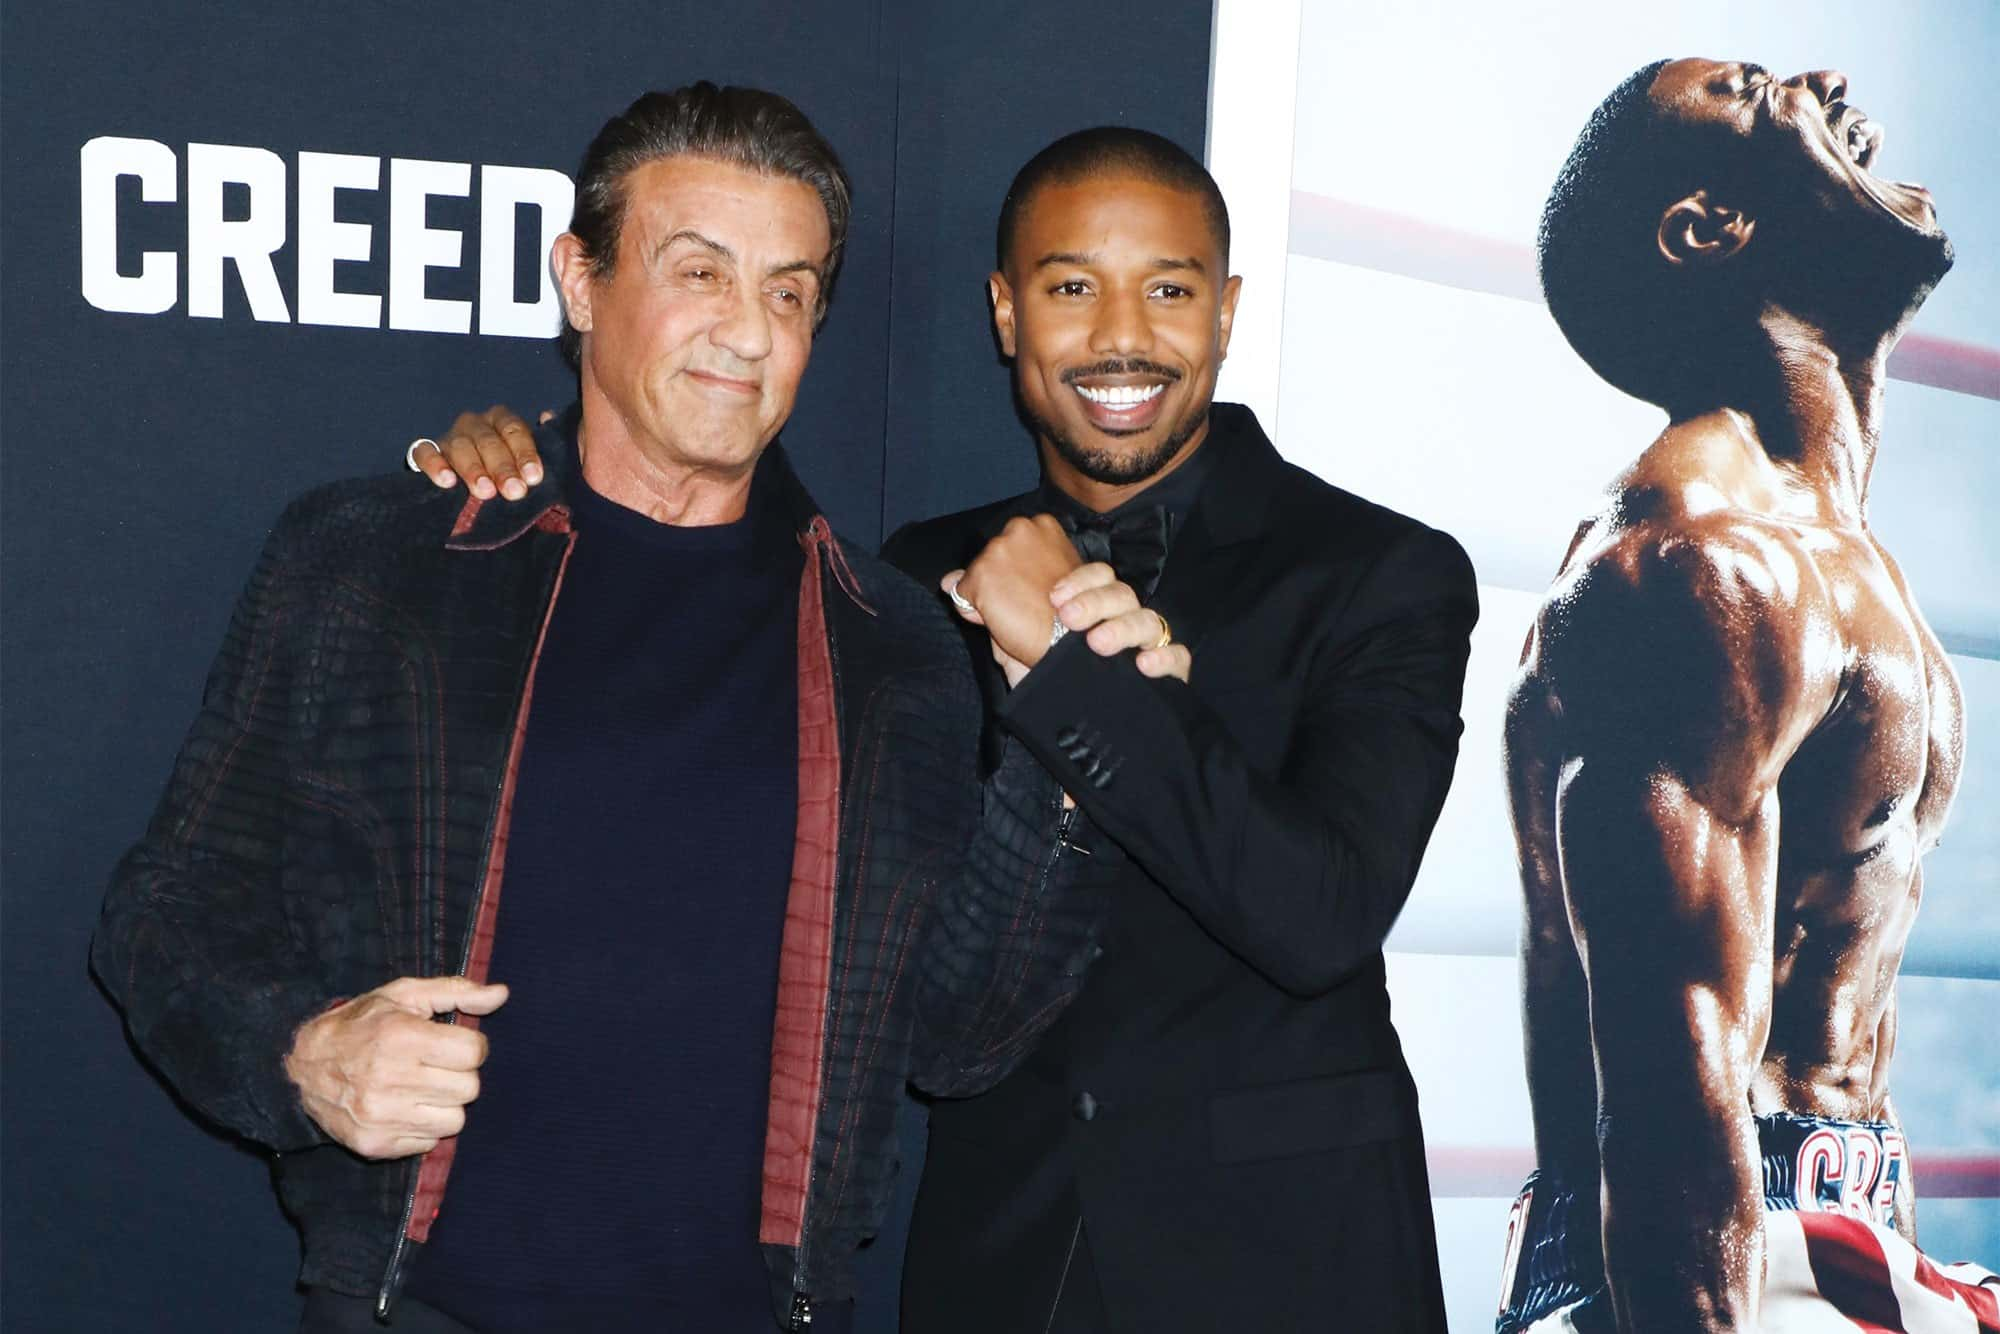 Sylvester Stallone Says 'Creed II' Is Probably His Last Time Playing Rocky. Sylvester Stallone found himself catapulted to a new tier of fame and acclaim